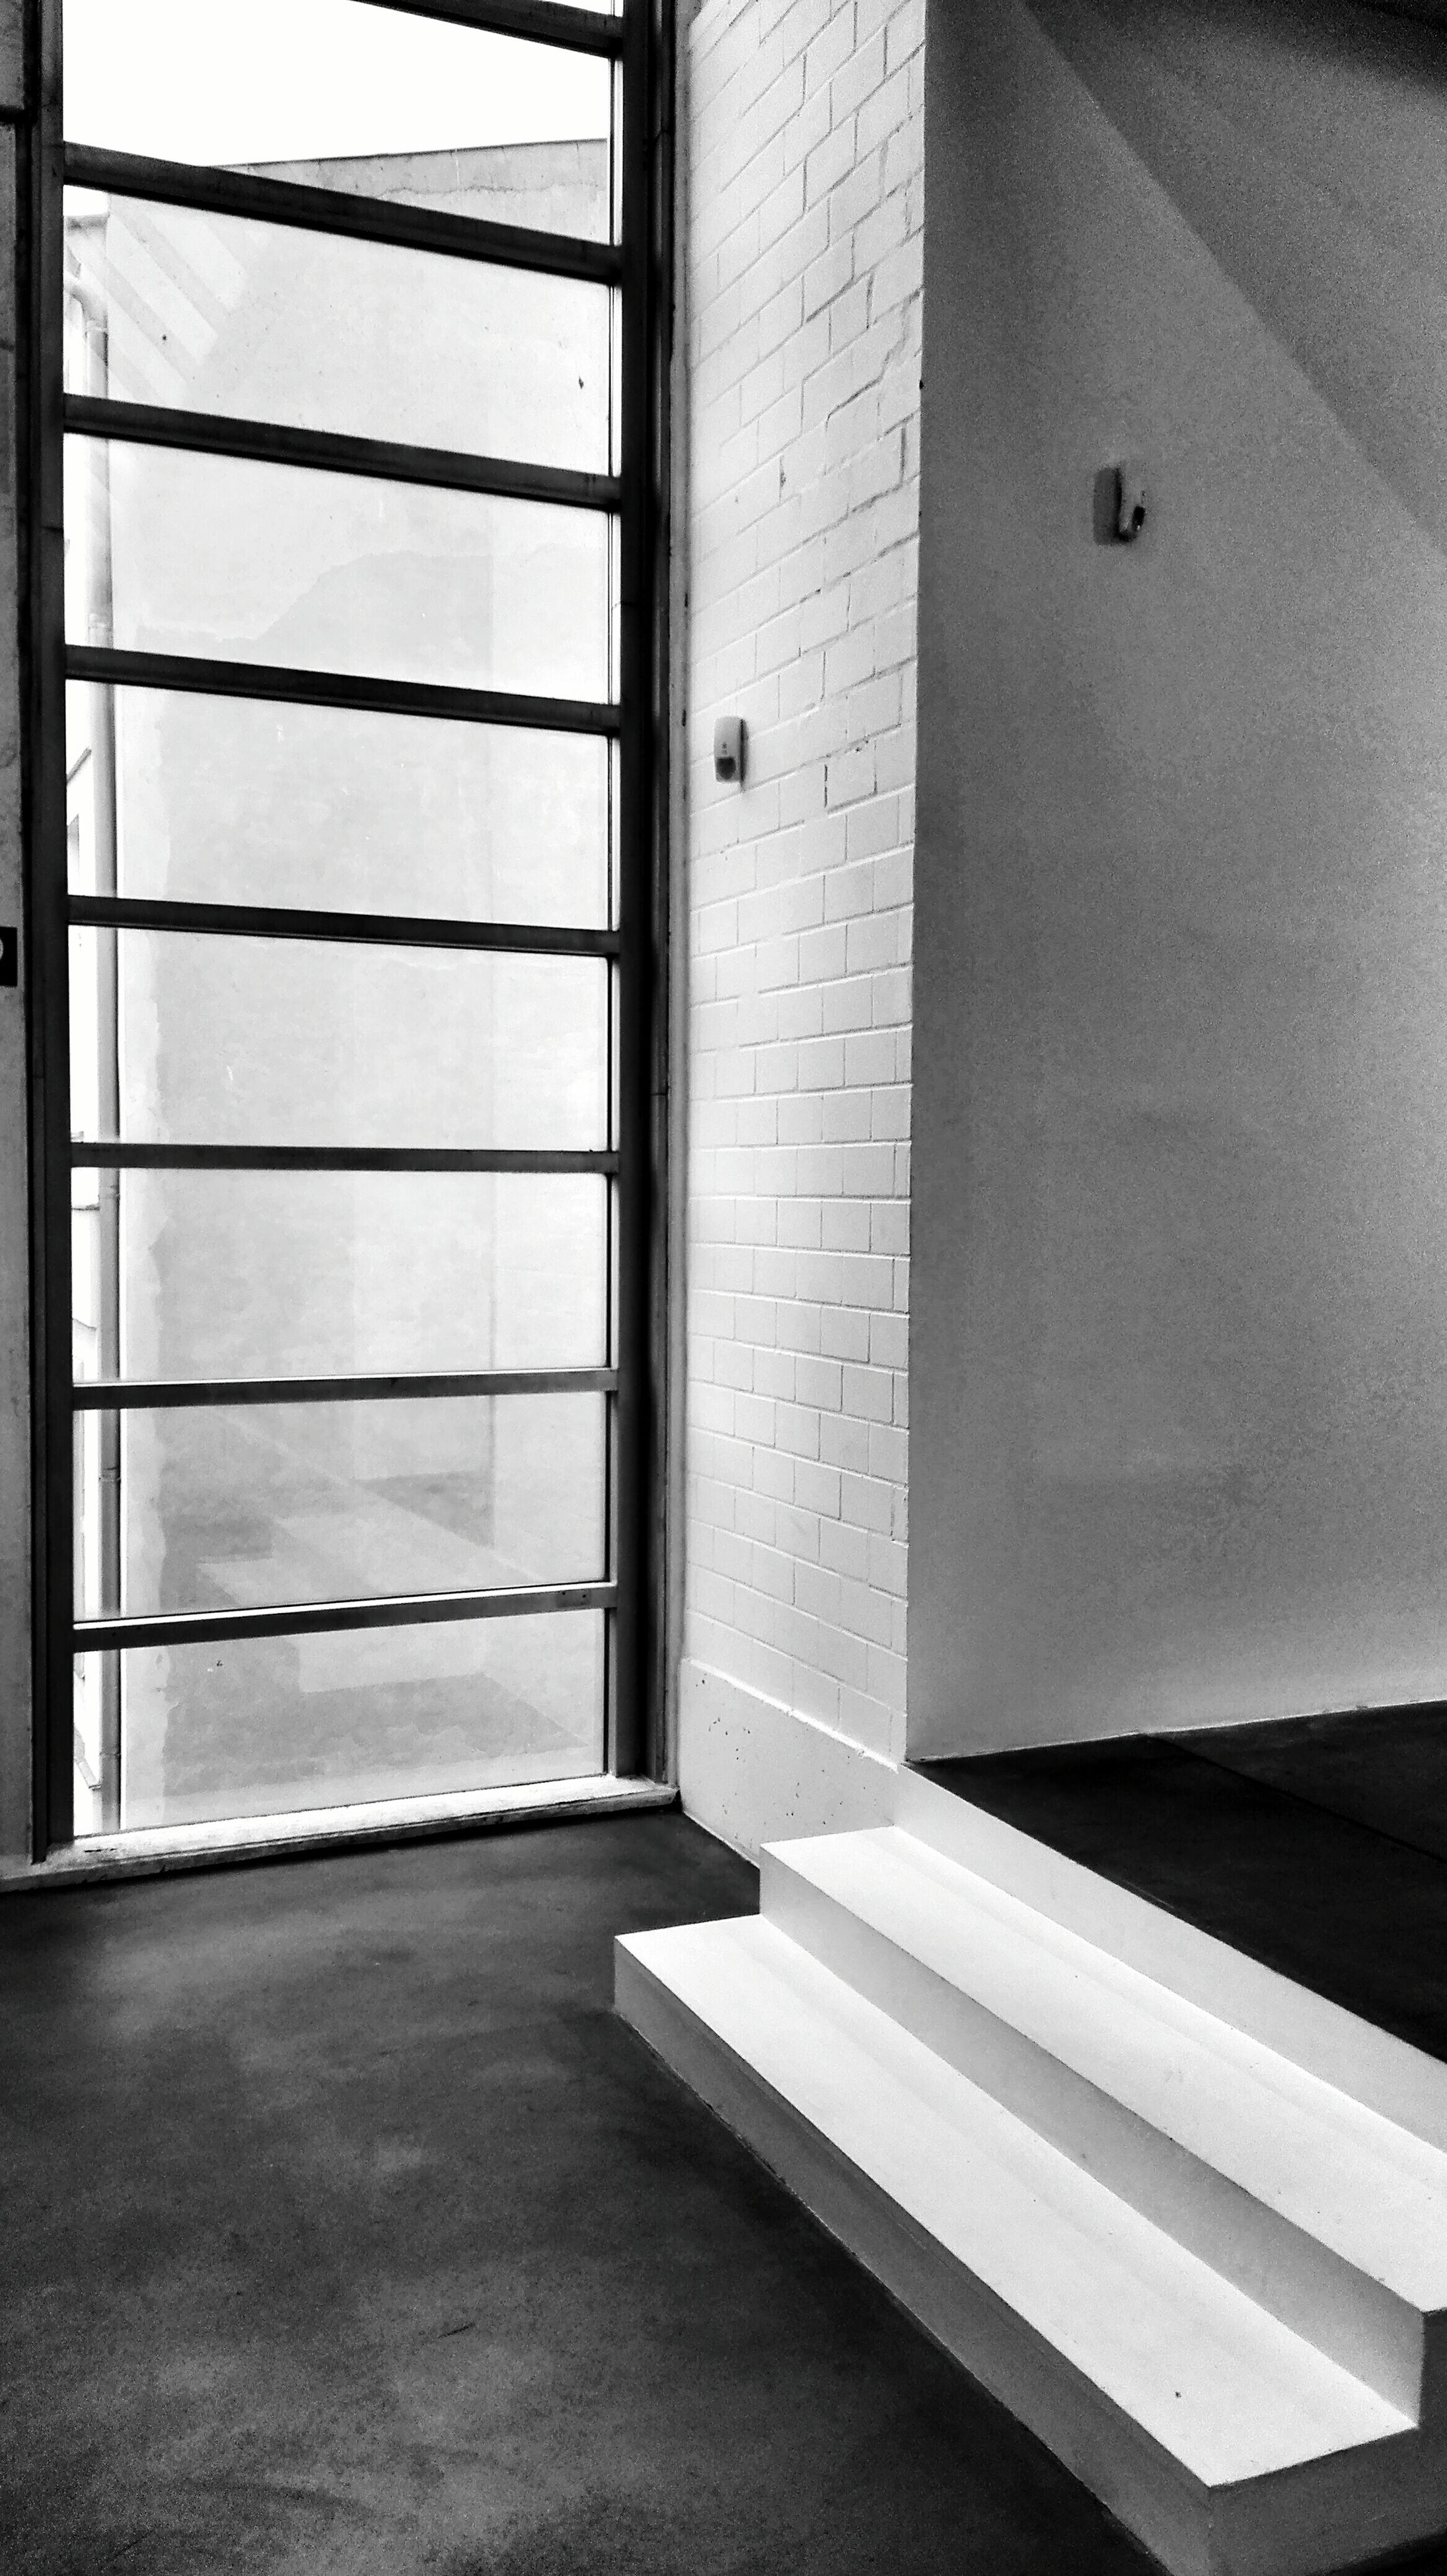 architecture, built structure, building exterior, window, indoors, wall - building feature, door, wall, shadow, building, sunlight, day, tiled floor, empty, closed, absence, no people, white color, city, entrance